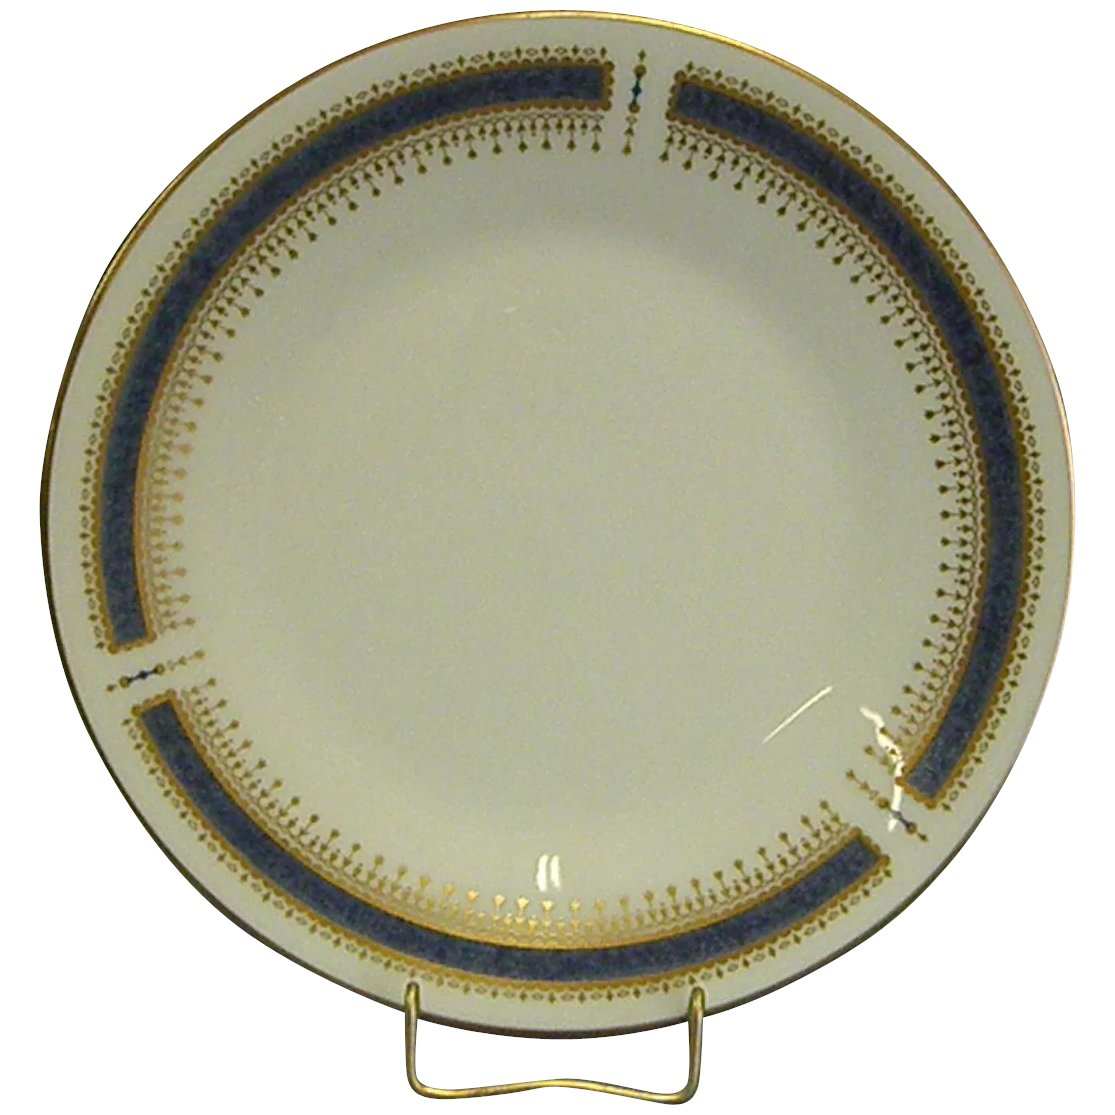 Noritake China Blue Dawn Bread Plates